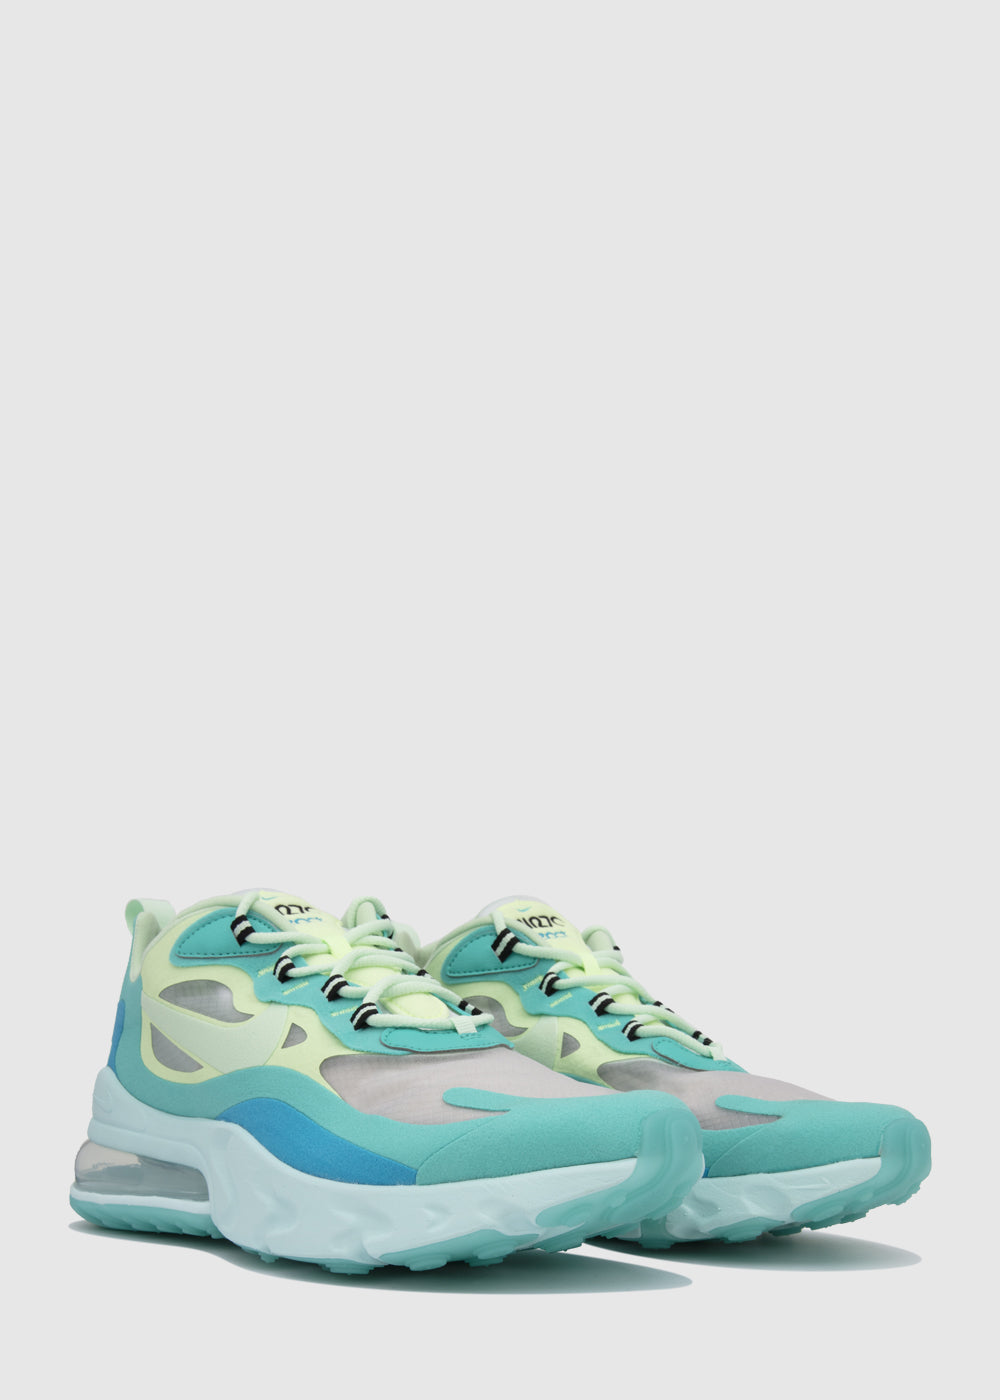 nike-air-max-20-react-green-2